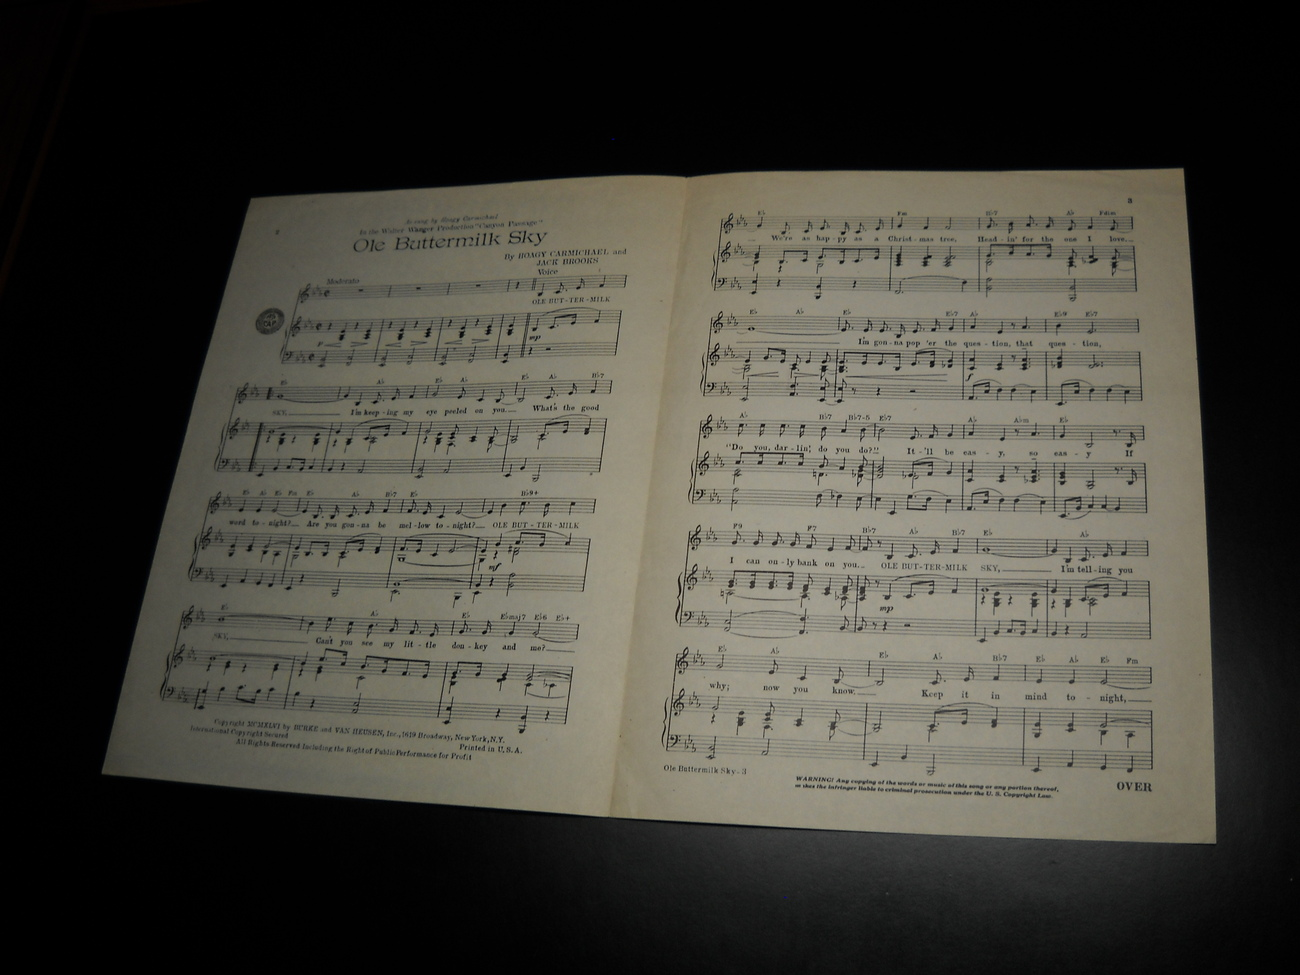 Sheet_music_ole_buttermilk_sky_canyon_passage_patty_clayton_1946_berke_05